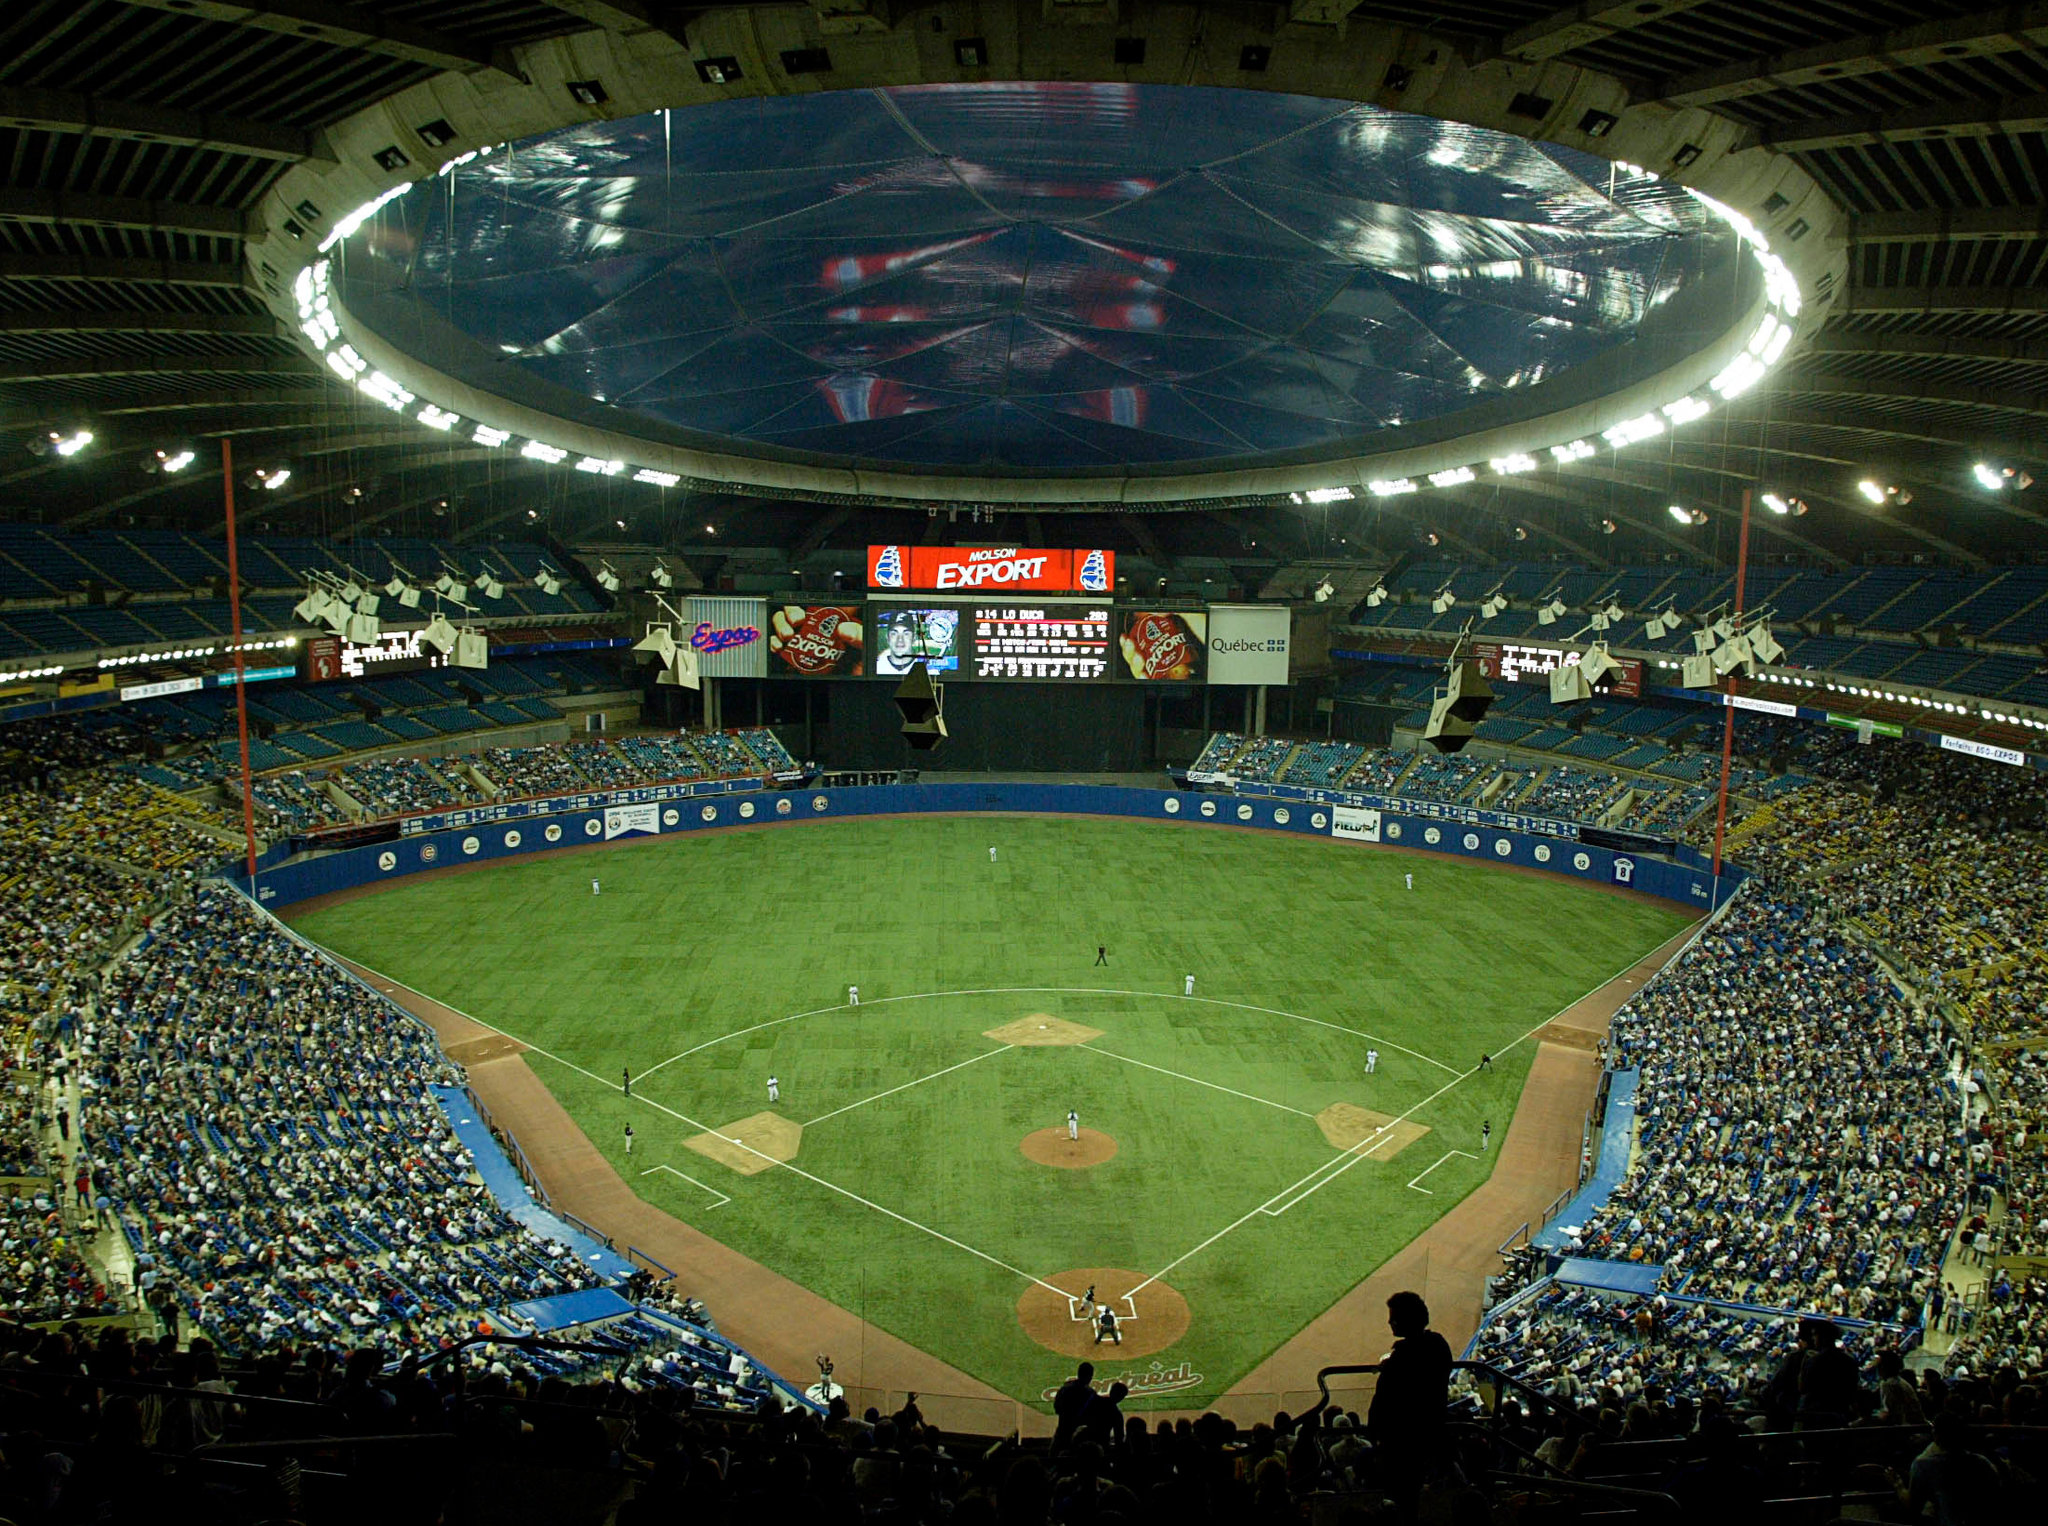 Montreal Expos fans watching their team play its final home game at 2048x1526